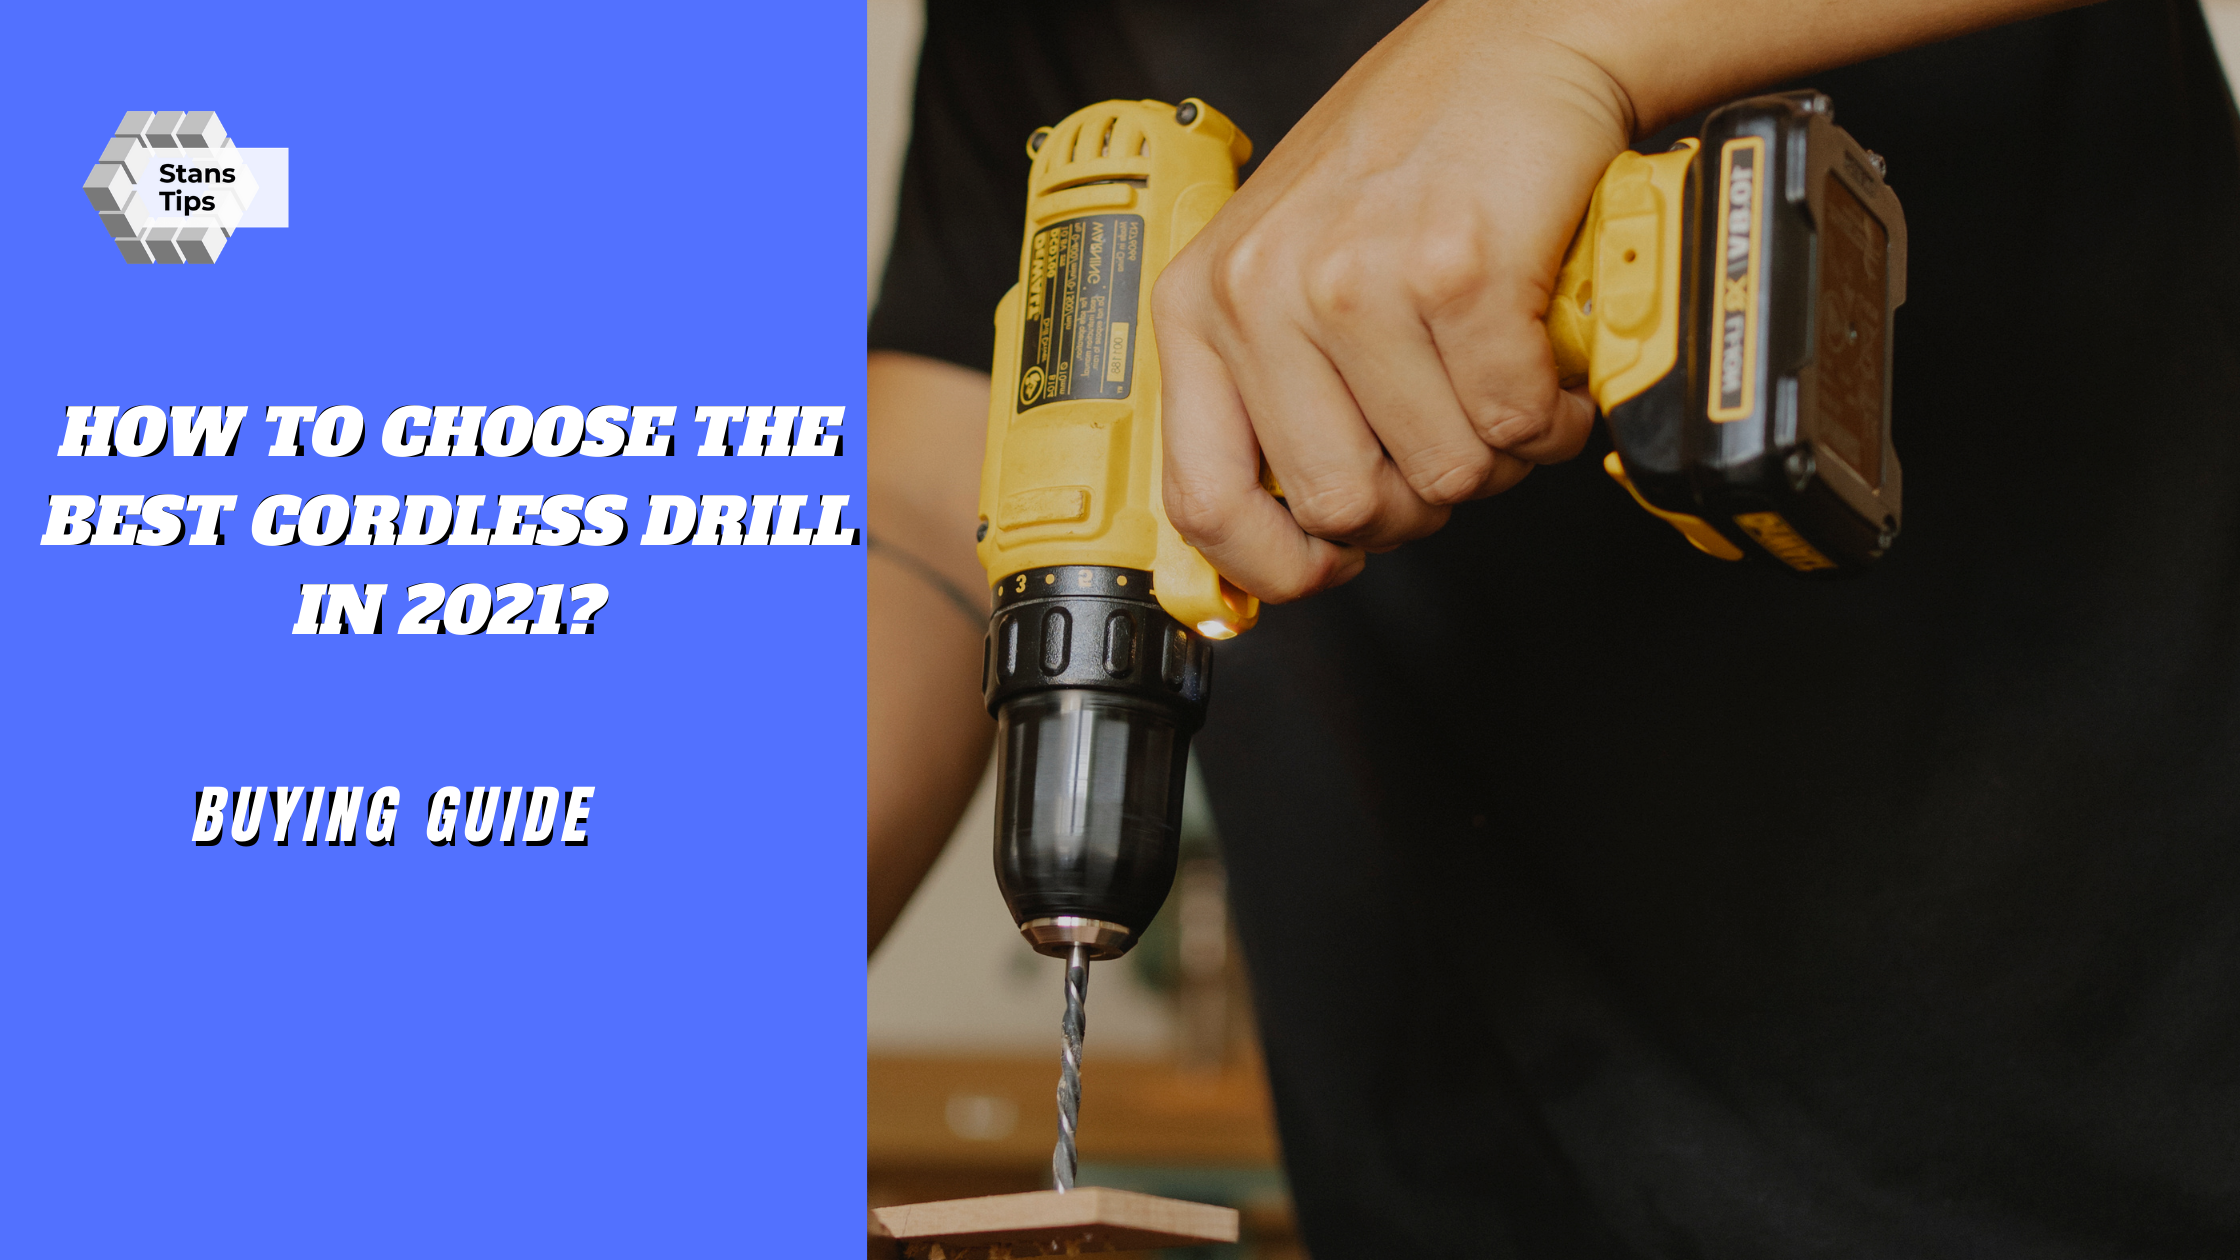 How To Choose The Best Cordless Drill In 2021 1